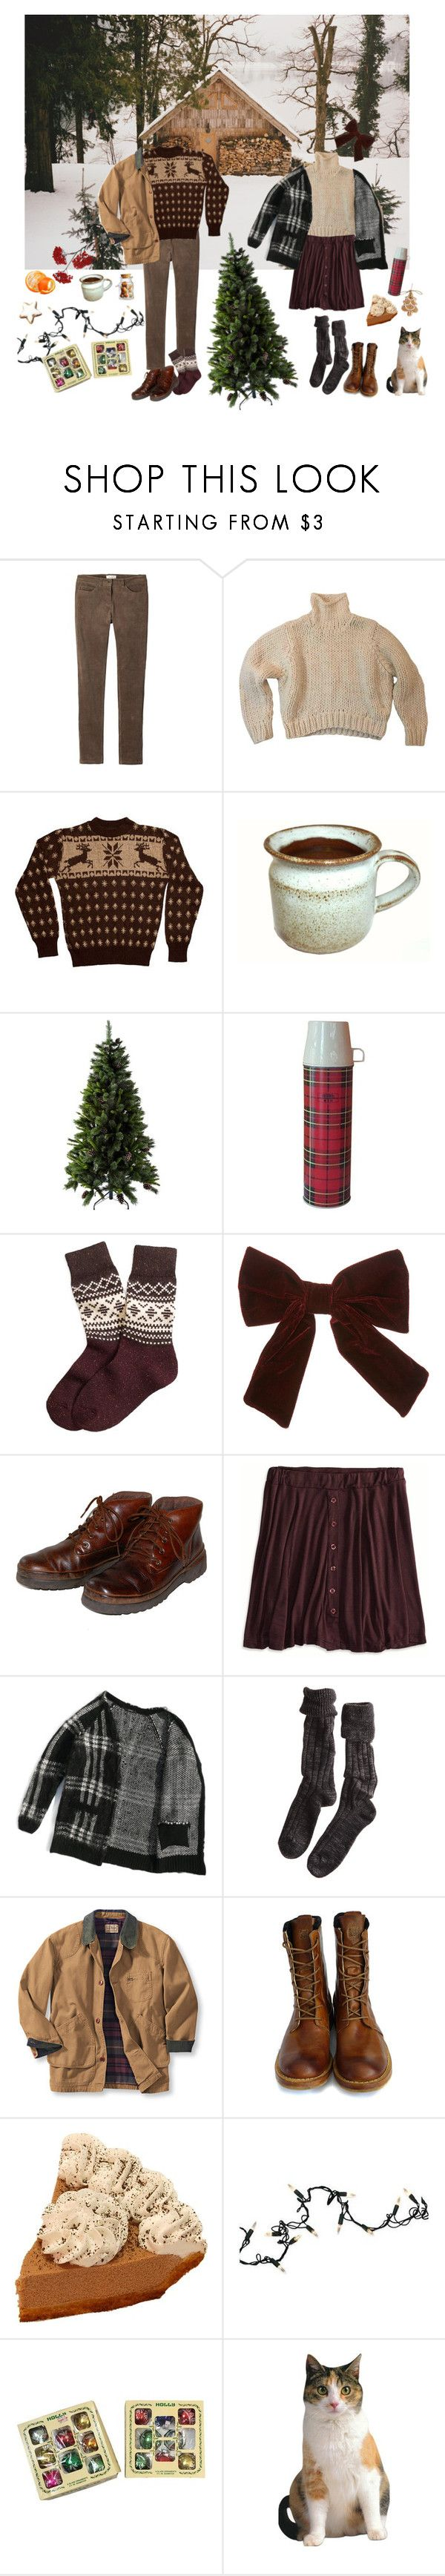 """""""Bringing home the tree"""" by sam-penzance ❤ liked on Polyvore featuring Toast, American Apparel, Brooks Brothers, Rockport, American Eagle Outfitters, Polder, Timberland Boot Company and Kurt Adler"""